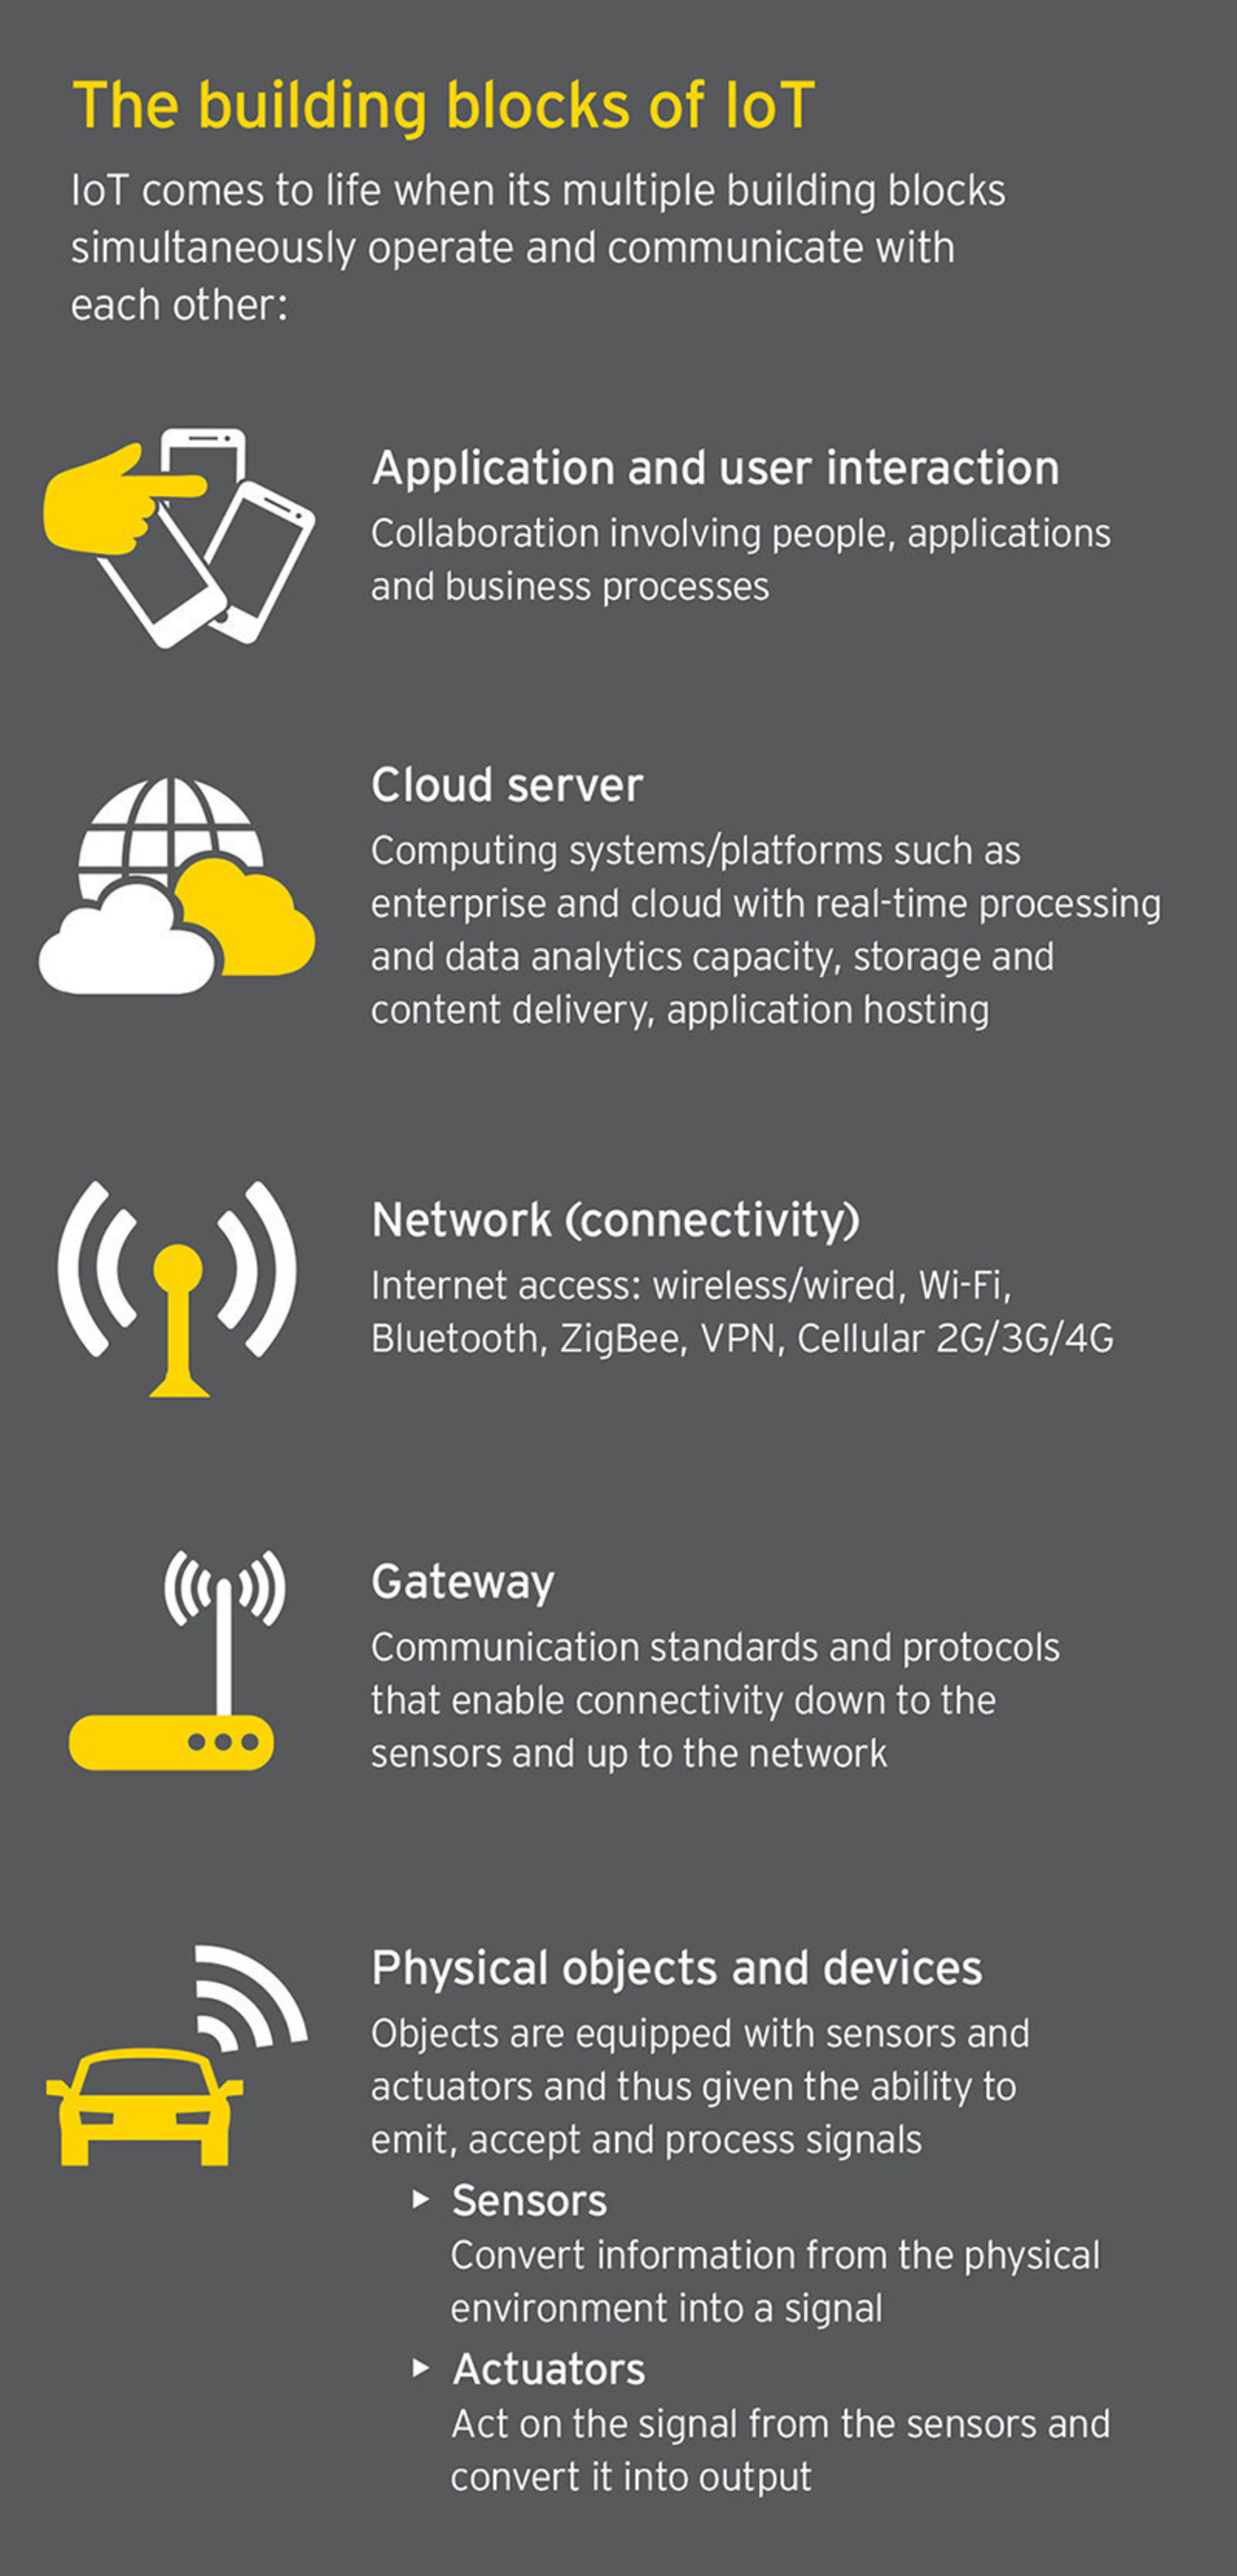 EY: Internet of Things - Human-machine interactions that unlock possibilities